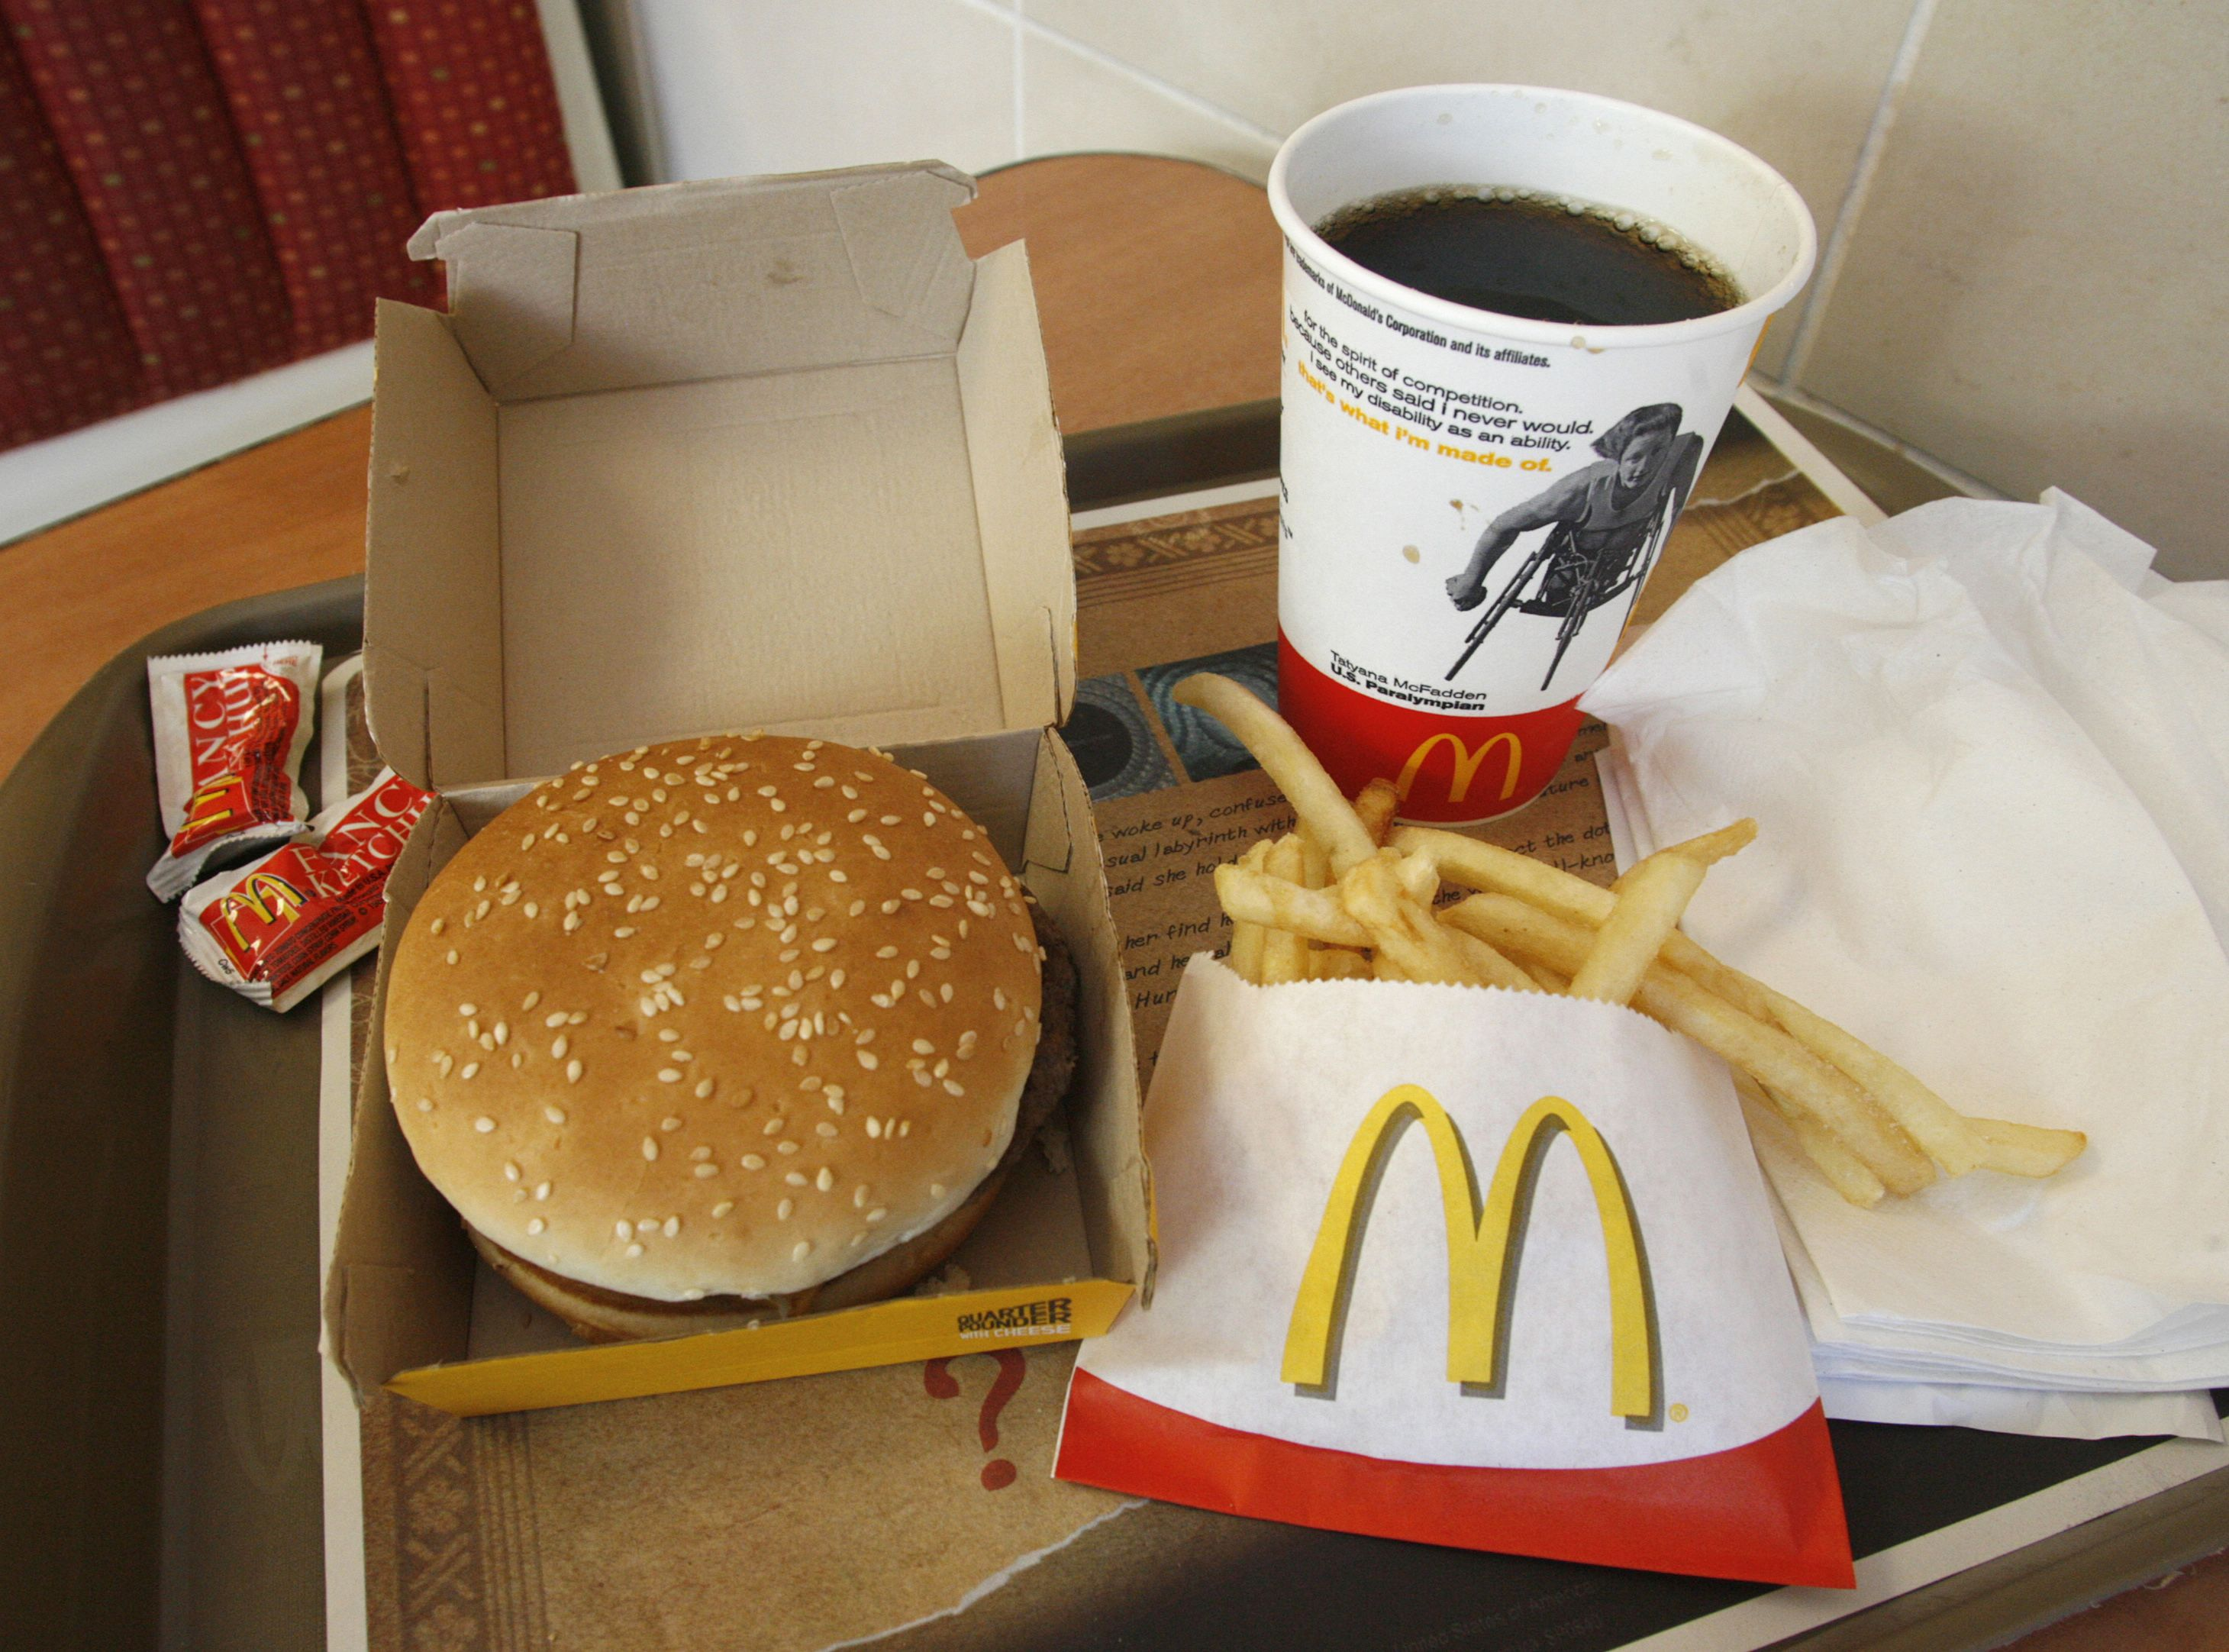 A meal consisting of a Quarter Pounder hamburger, french fries and soft-drink is pictured at a McDonald's restaurant in Los Angeles, California July 23, 2008. McDonald's on Wednesday posted a quarterly profit that topped expectations, boosted by continued strength overseas, the sale of its stake in sandwich chain Pret A Manger, and the weak dollar. But the world's biggest restaurant chain reported segment margins that were softer than some analysts expected and forecast rising beef costs, and its shares were off 19 cents.    REUTERS/Fred Prouser             (UNITED STATES) - RTR20GU7